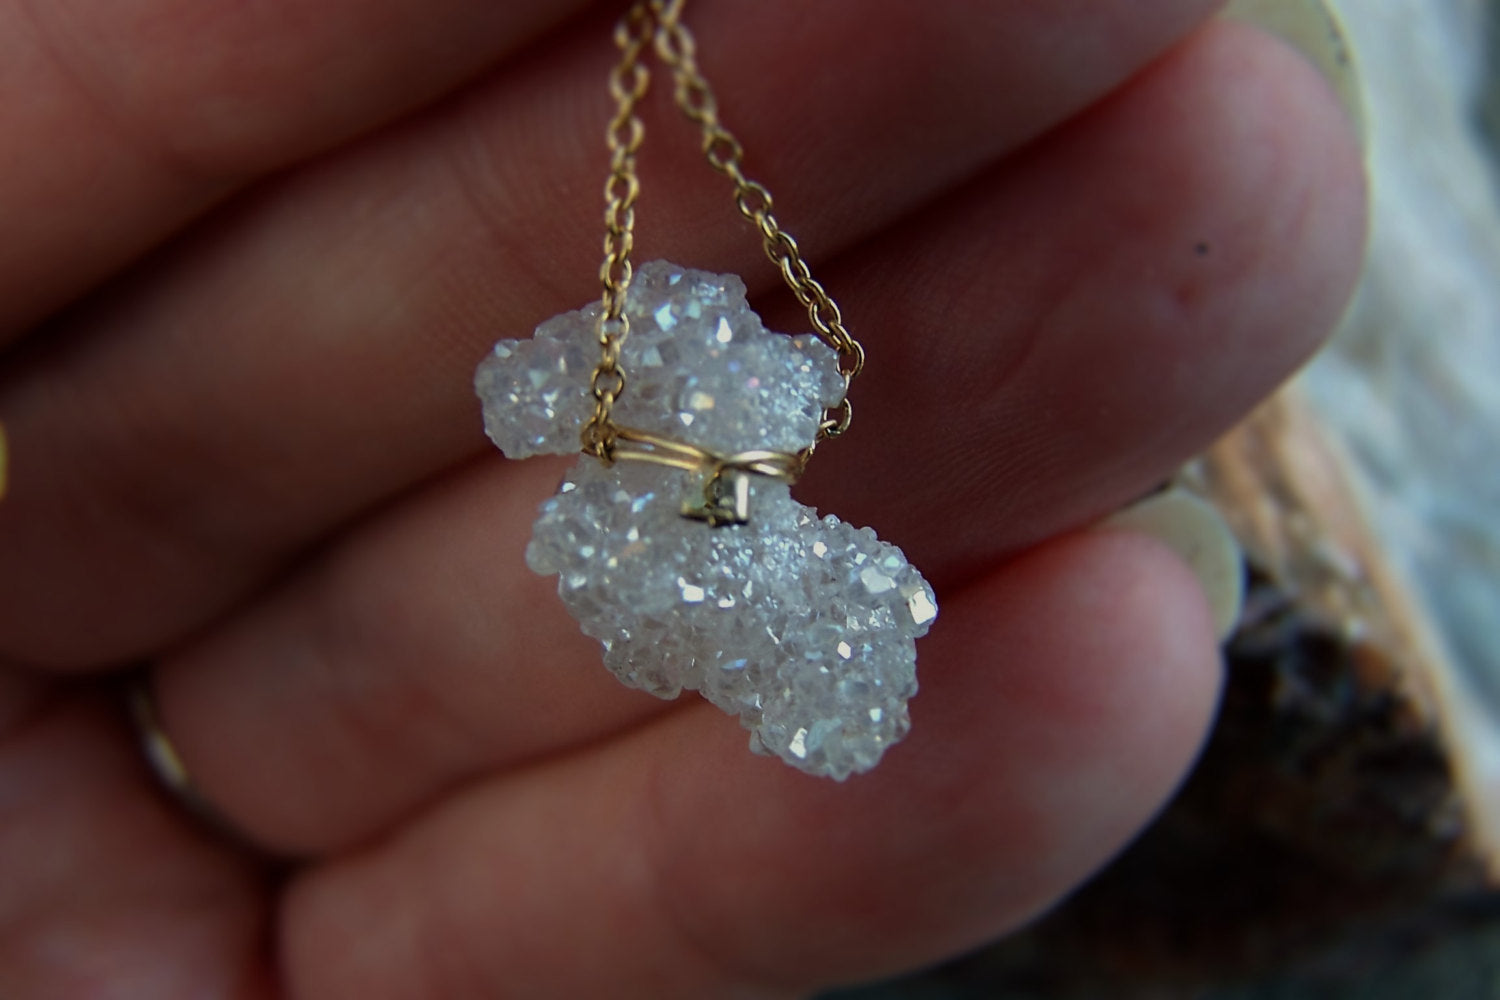 Freeform Crystal Pendant Necklace | Druzy Crystal Quartz Pendant Necklace